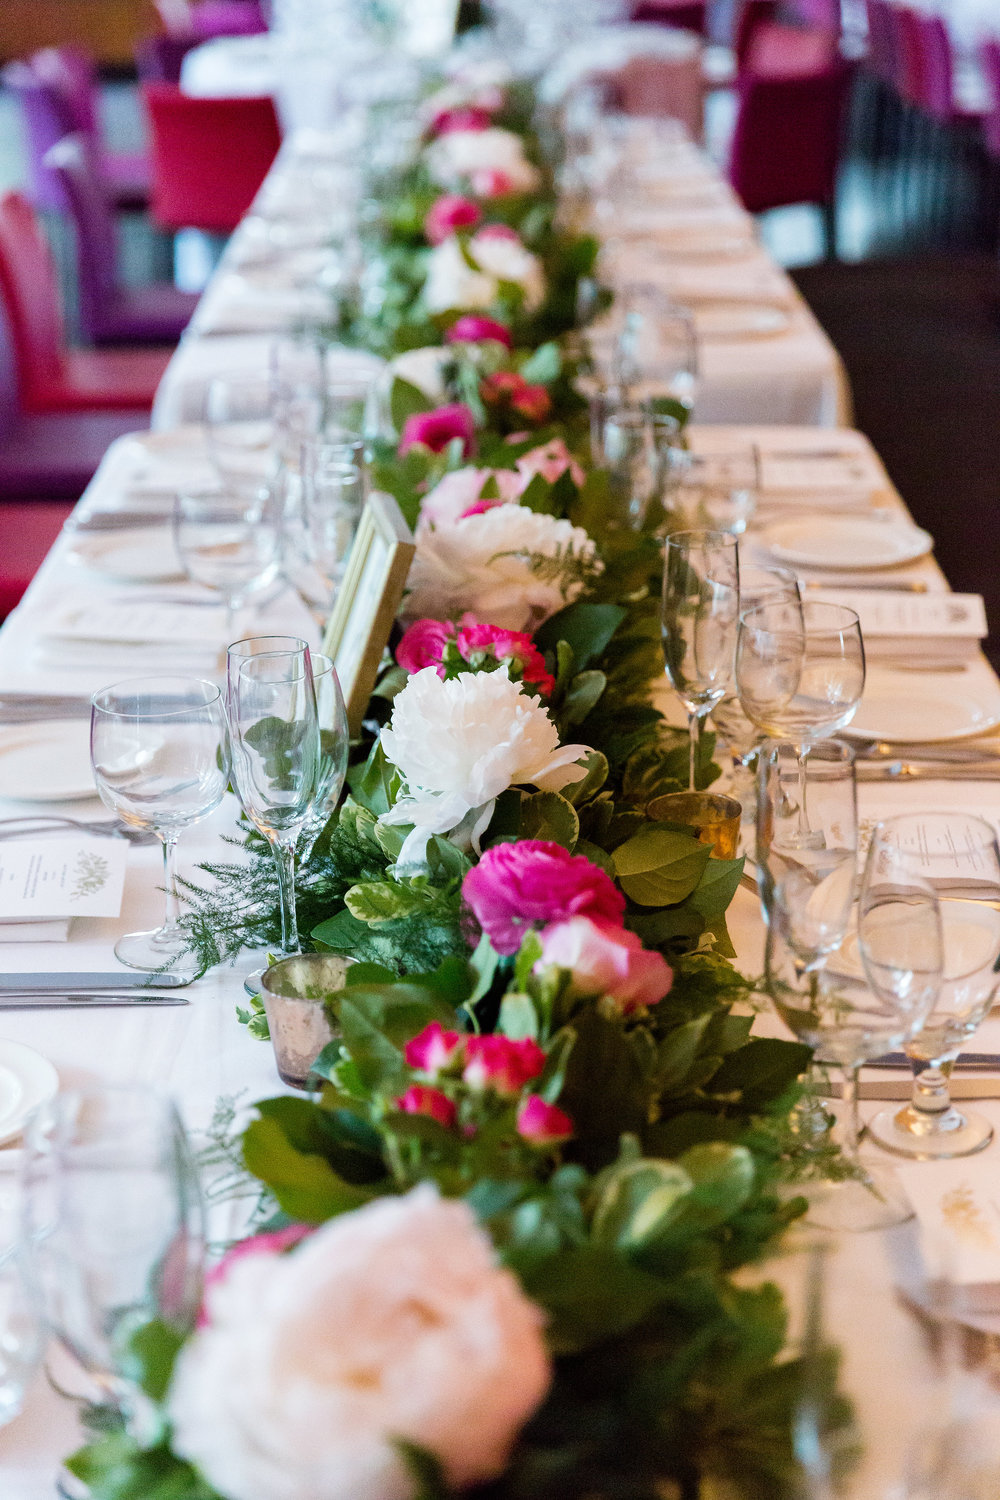 Flower garland table design